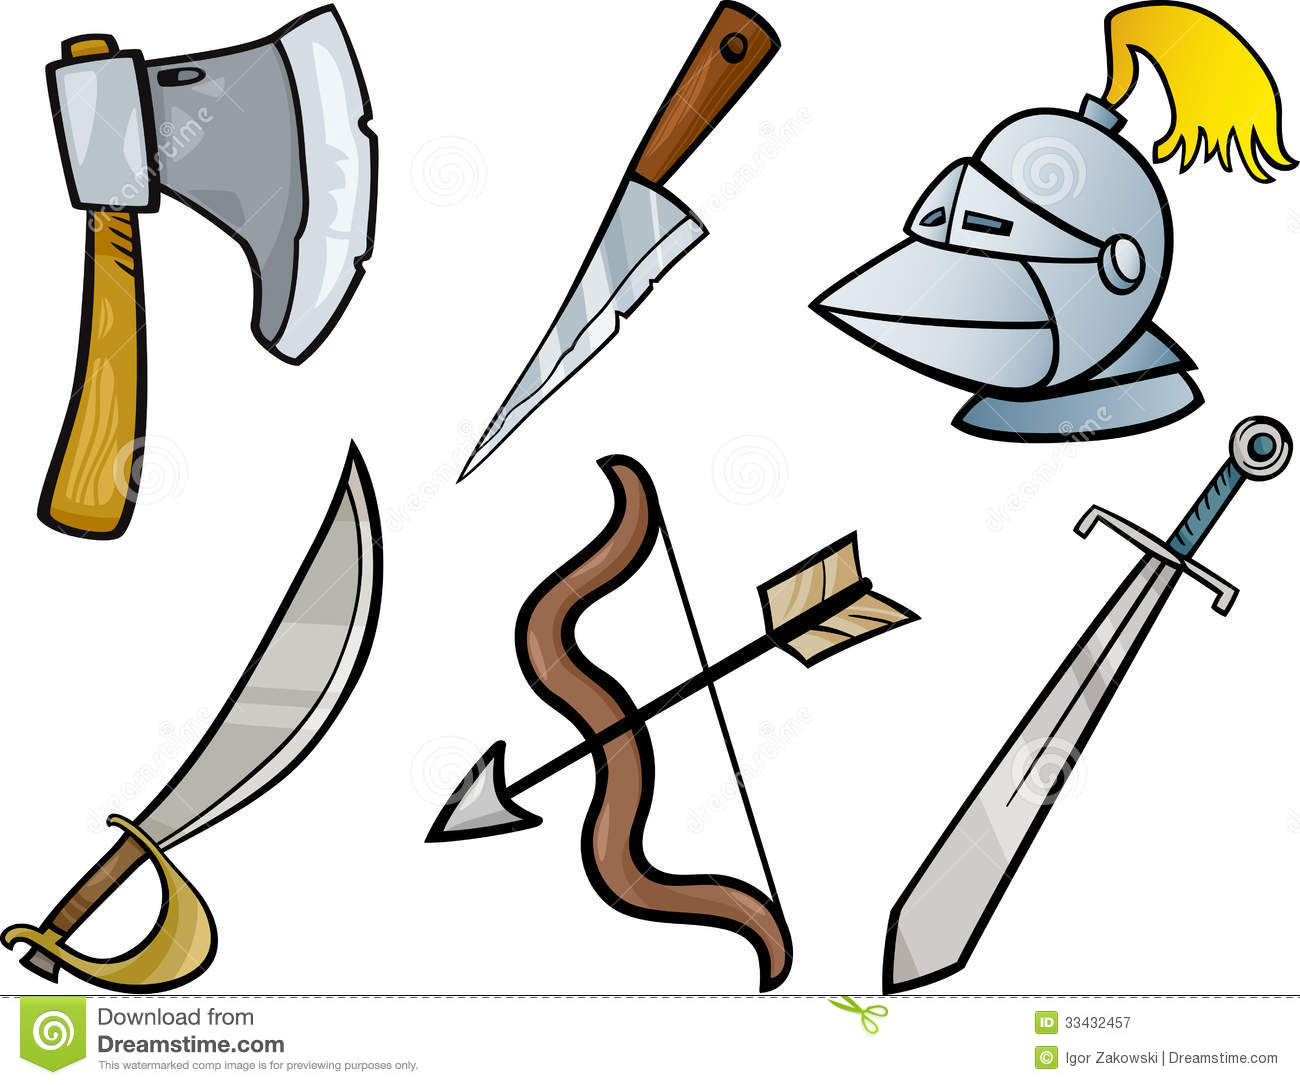 hight resolution of cartoon illustration of blades and weapons historical objects clip art set